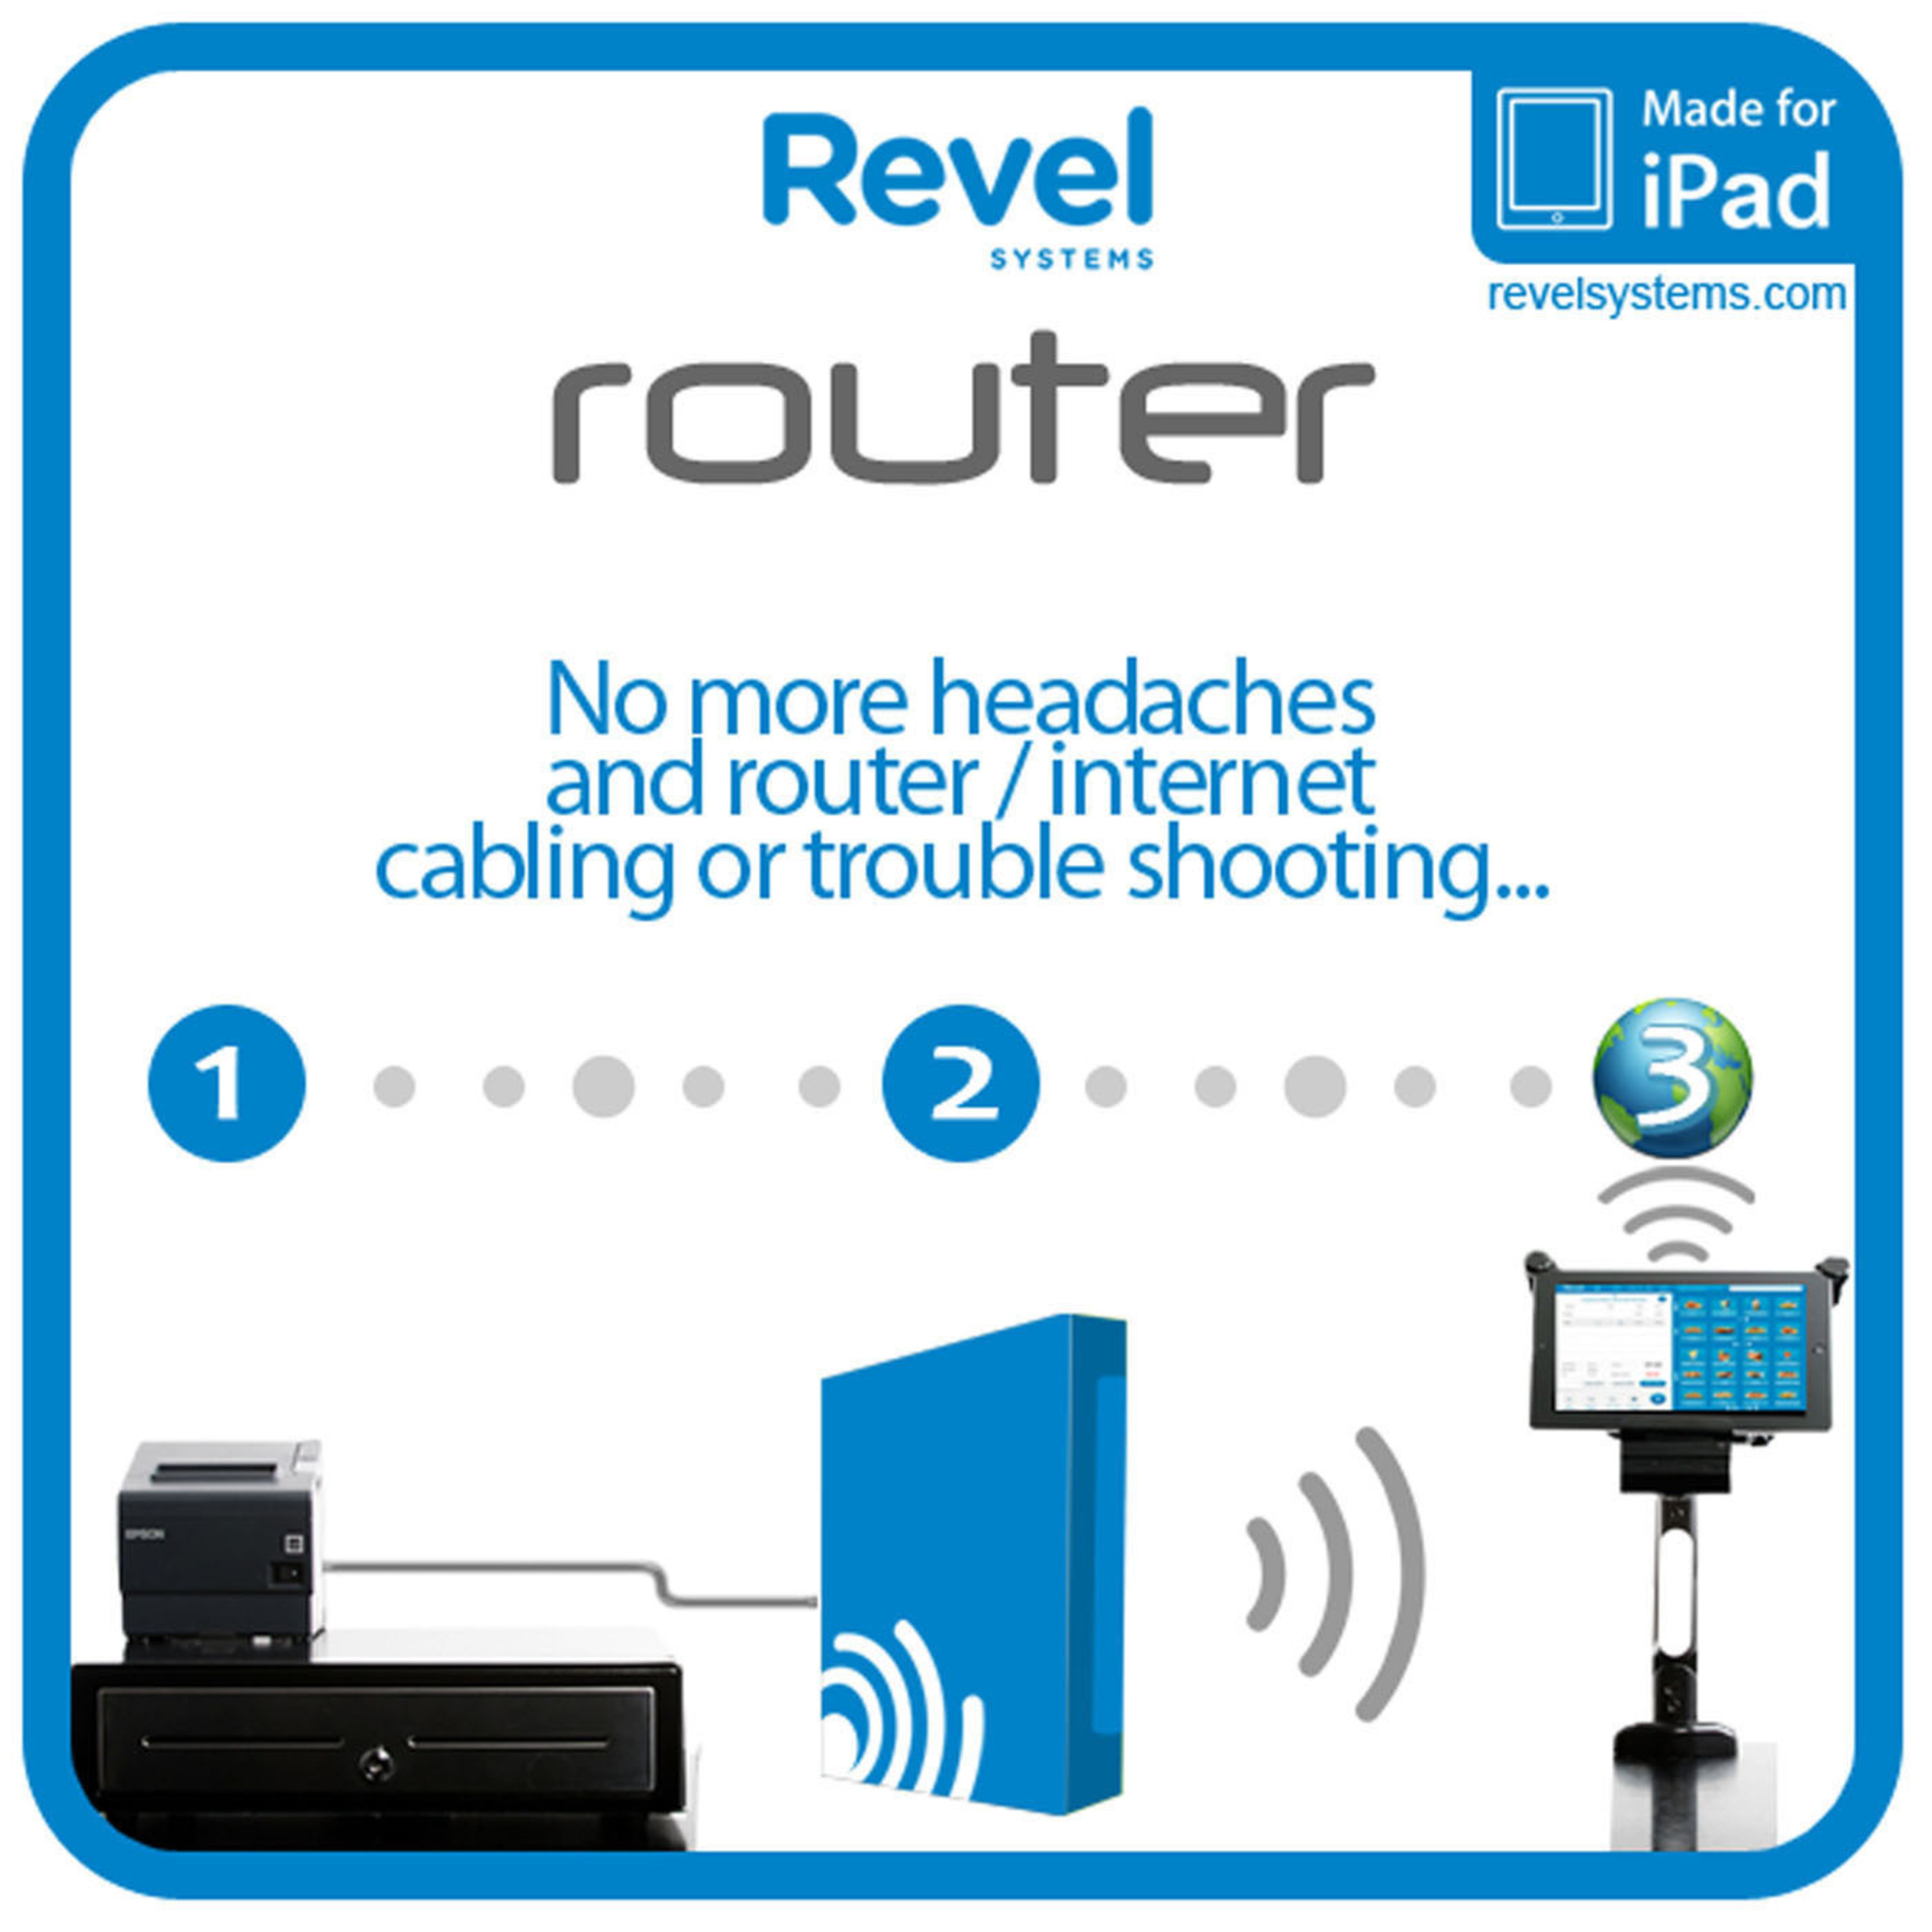 Revel iPad POS releases Revel Router which eliminates all hassle for customers.  (PRNewsFoto/Revel Systems, Inc)